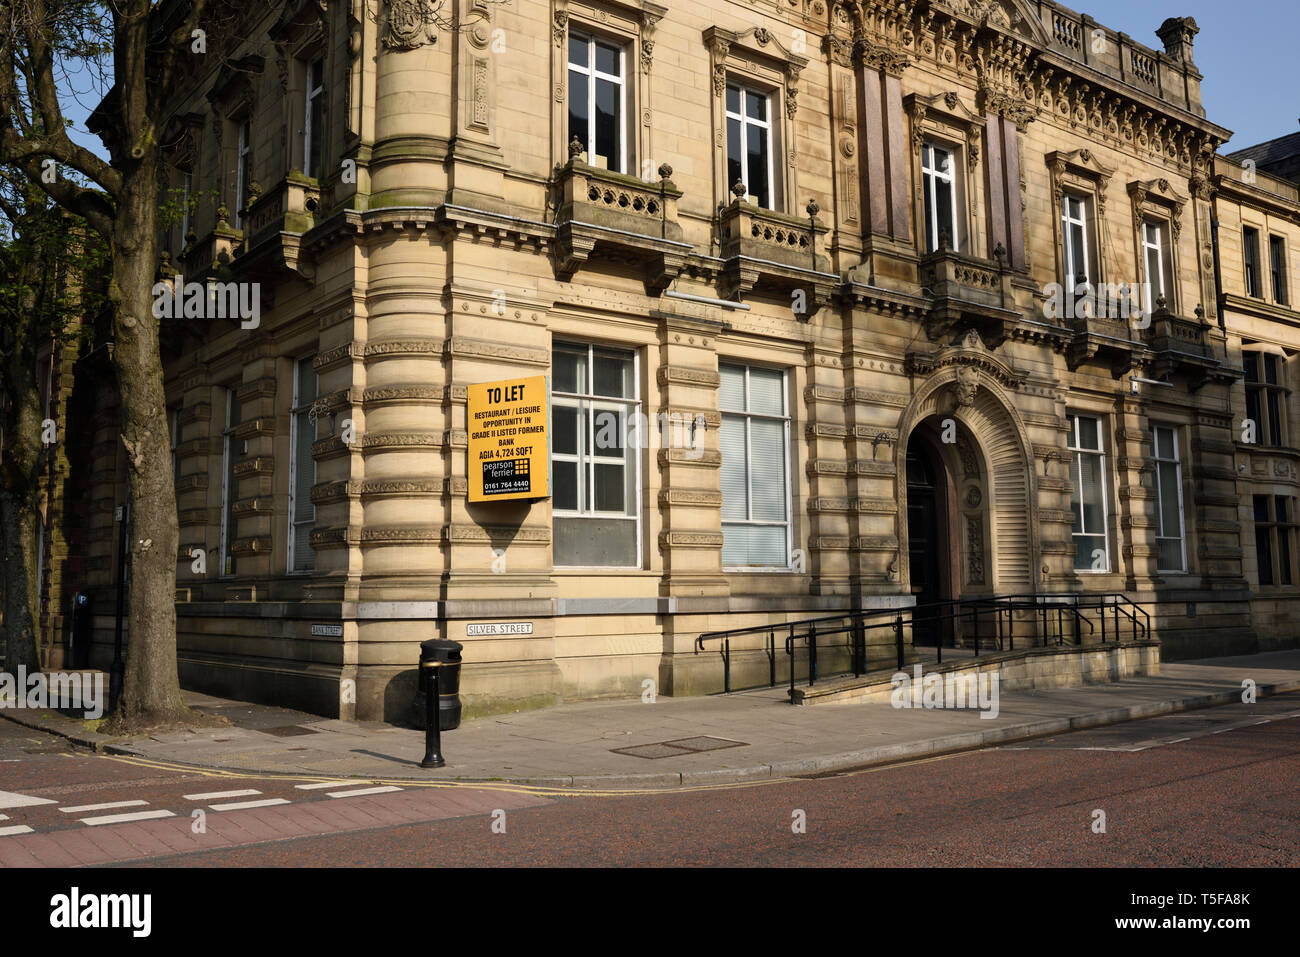 Former barclays bank closed and to let, in bury lancashire uk - Stock Image